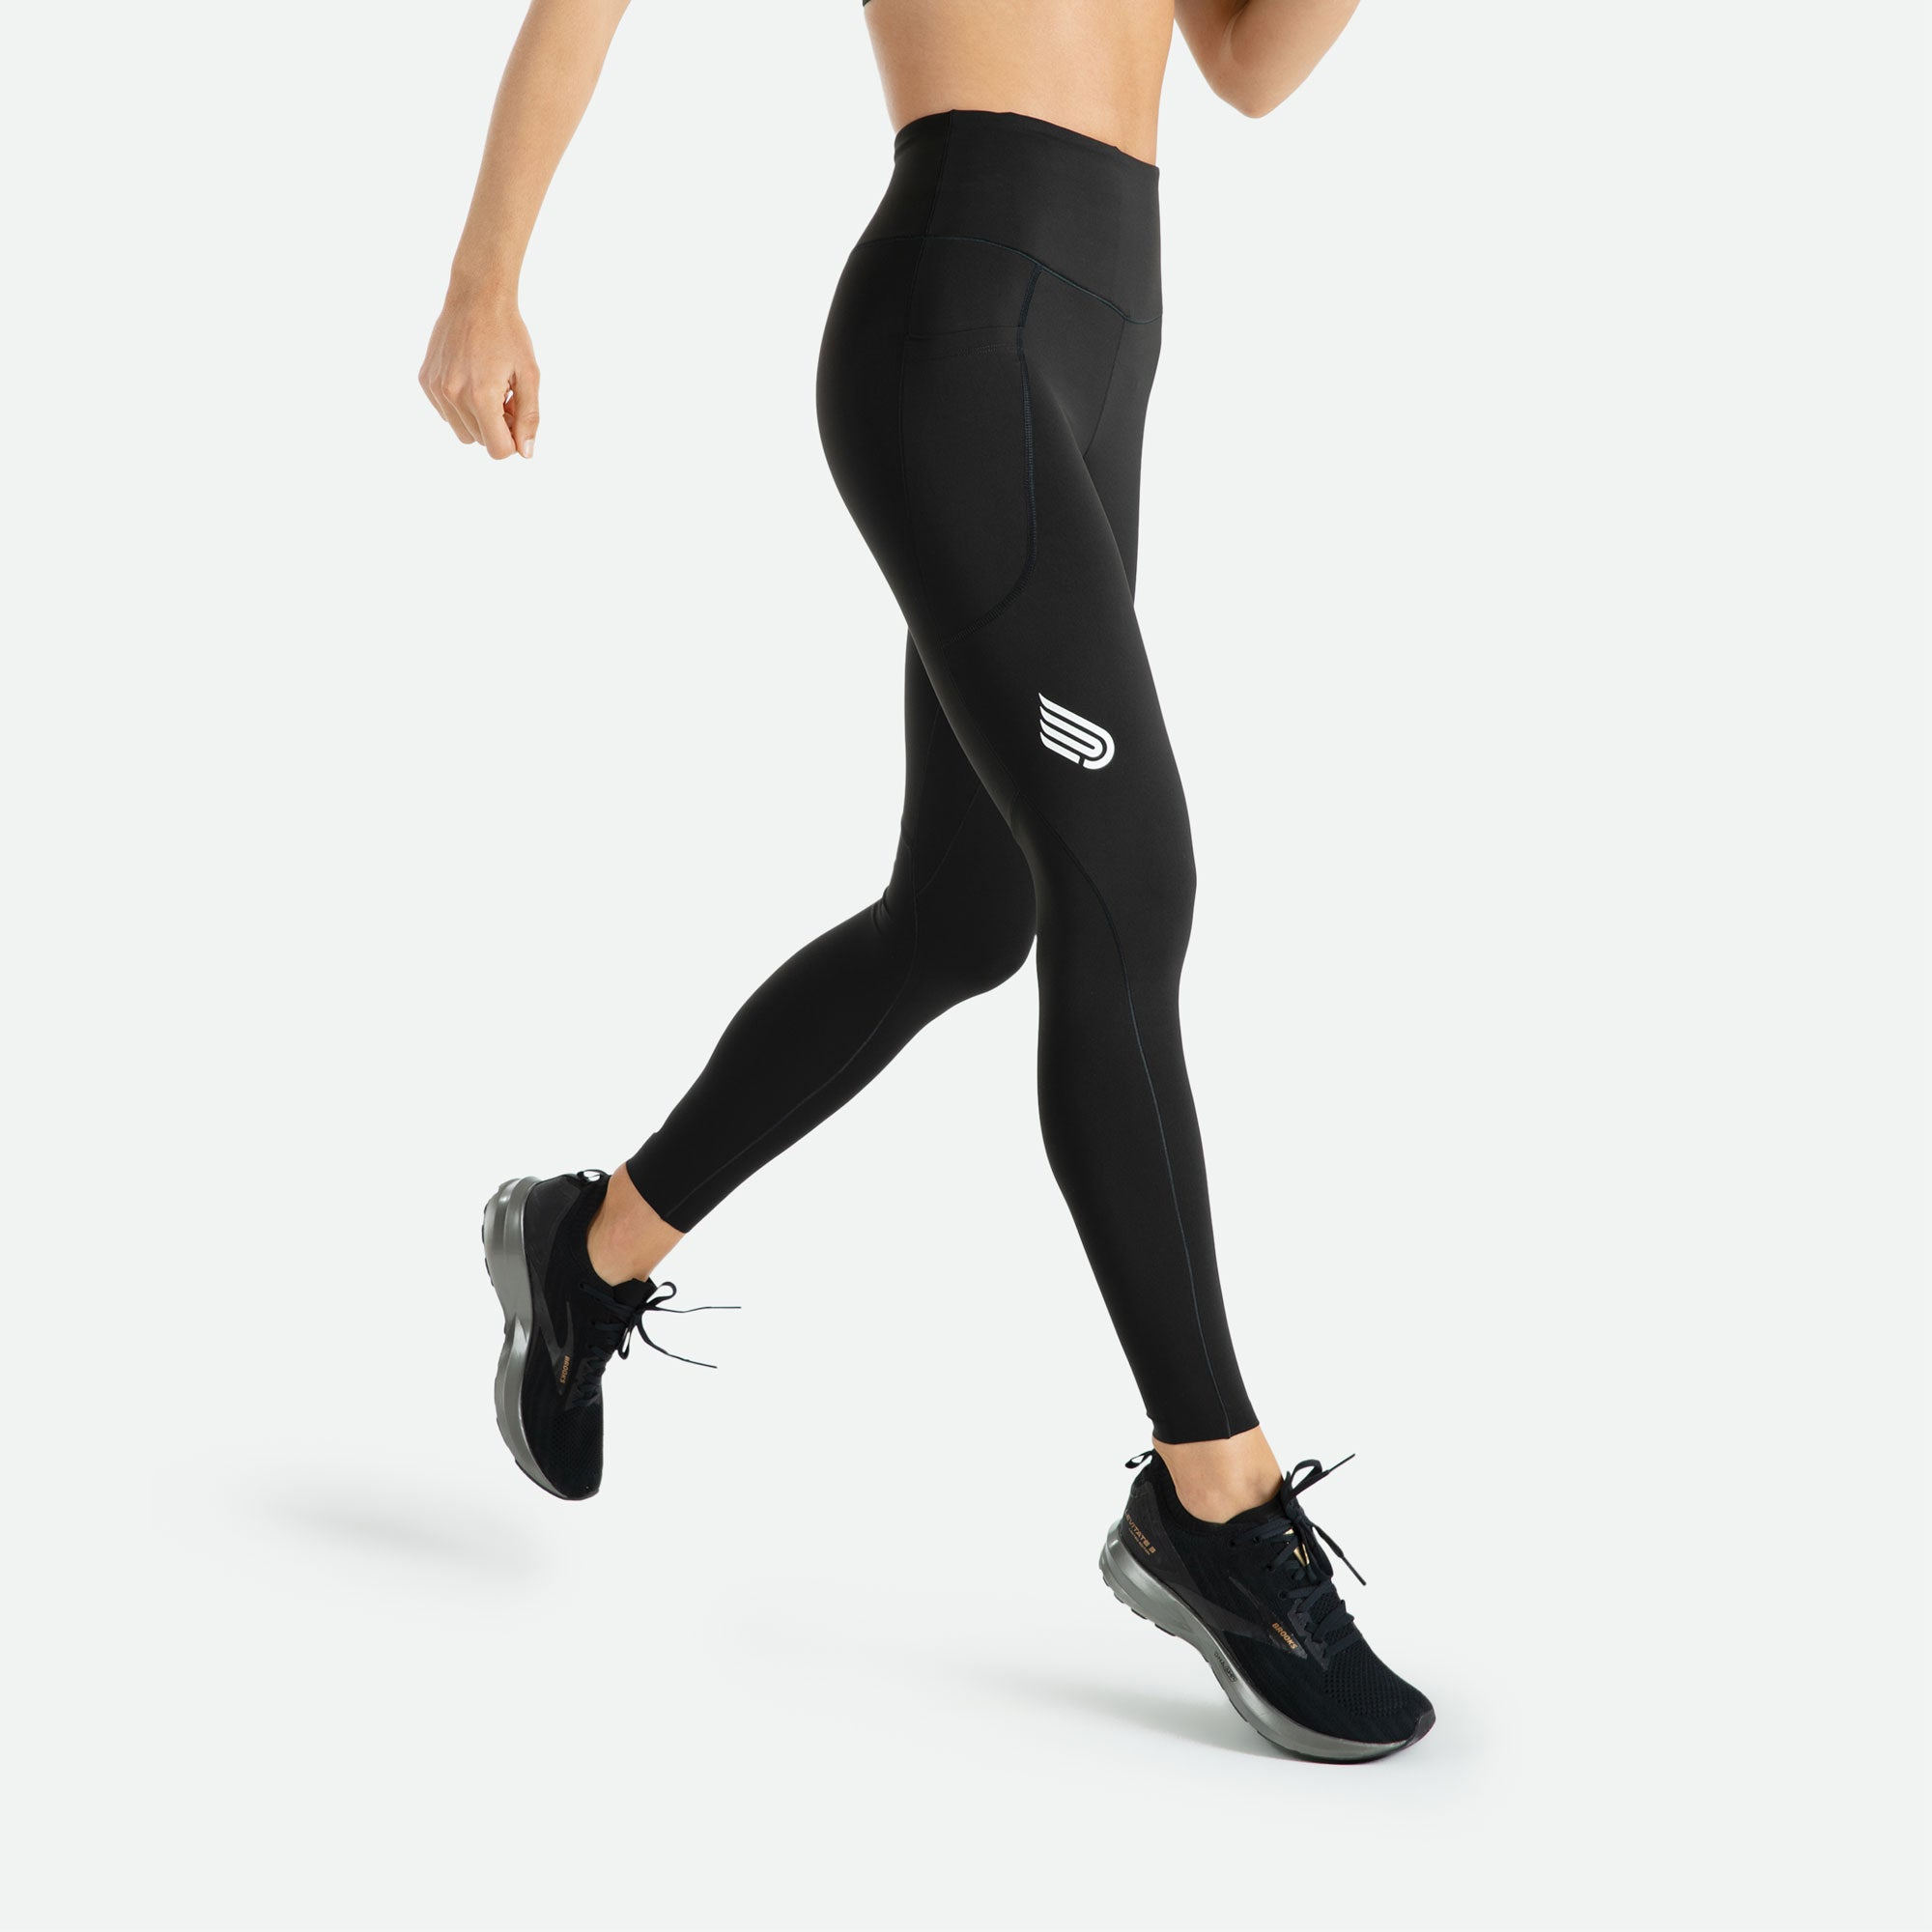 Women's Pressio compression high rise tight provides figure-flattering design so you can wear it all day knowing your legs are supported and recuperating for the next day's workout.